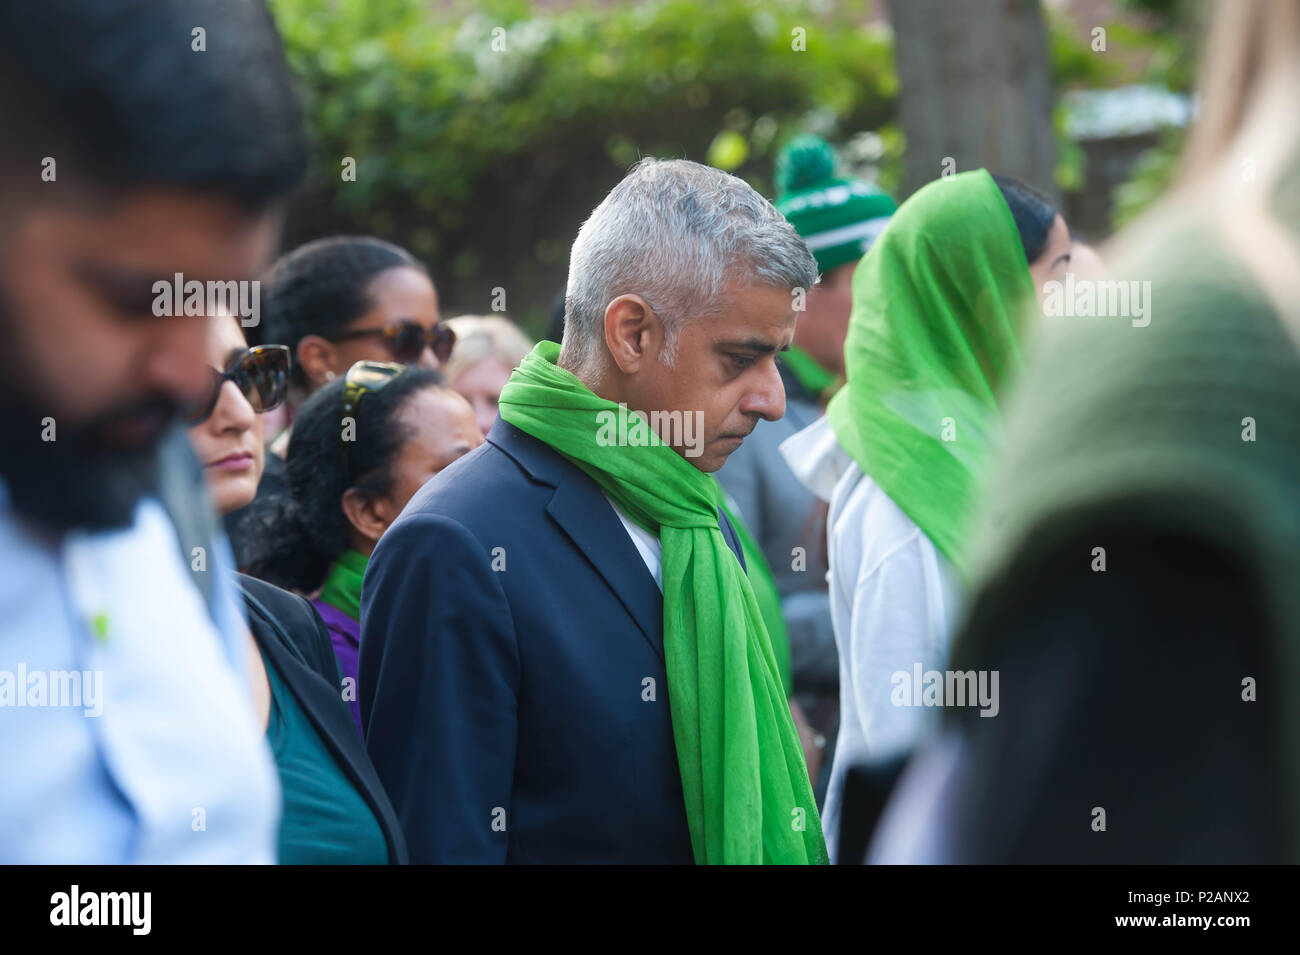 London, England. 14th June 2018. Mayor of London, Sadiq Khan during the Silent walk is held to mark the first anniversary of the Grenfell Tower fire, which claimed the lives of 72 people. ©Michael Tubi/Alamy Live News - Stock Image